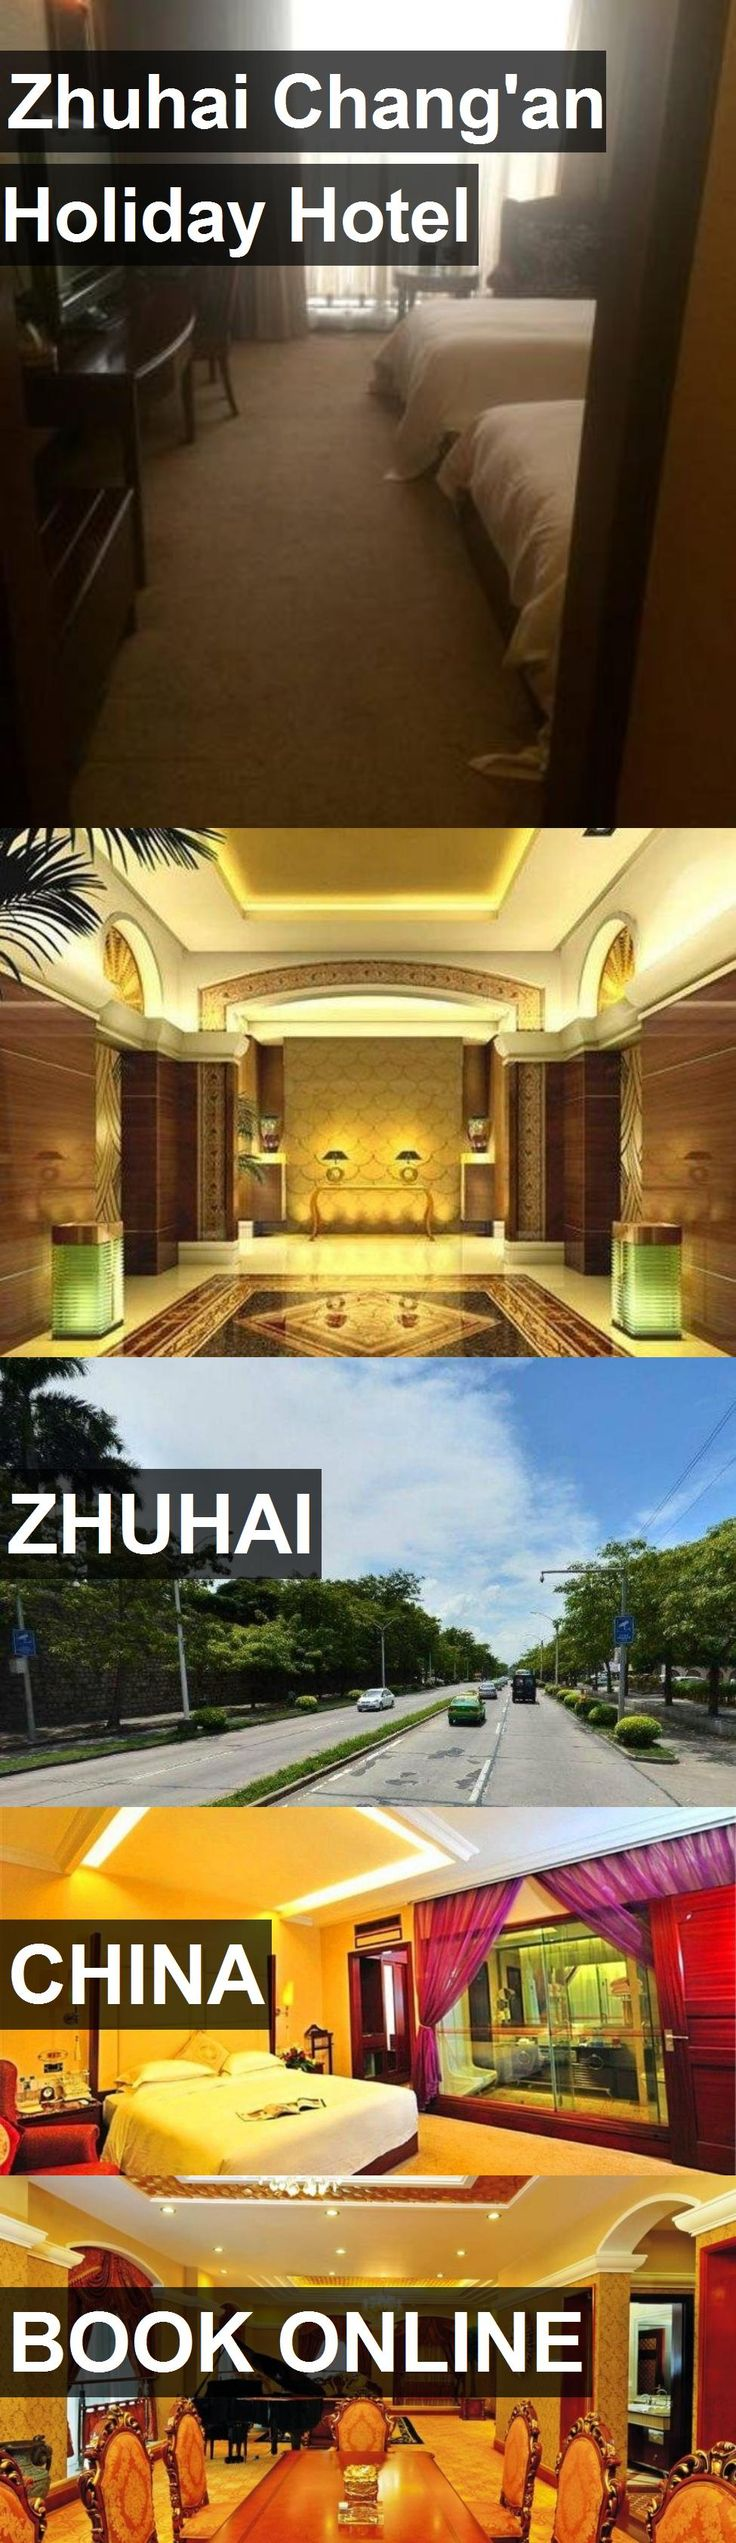 Hotel Zhuhai Chang'an Holiday Hotel in Zhuhai, China. For more information, photos, reviews and best prices please follow the link. #China #Zhuhai #hotel #travel #vacation